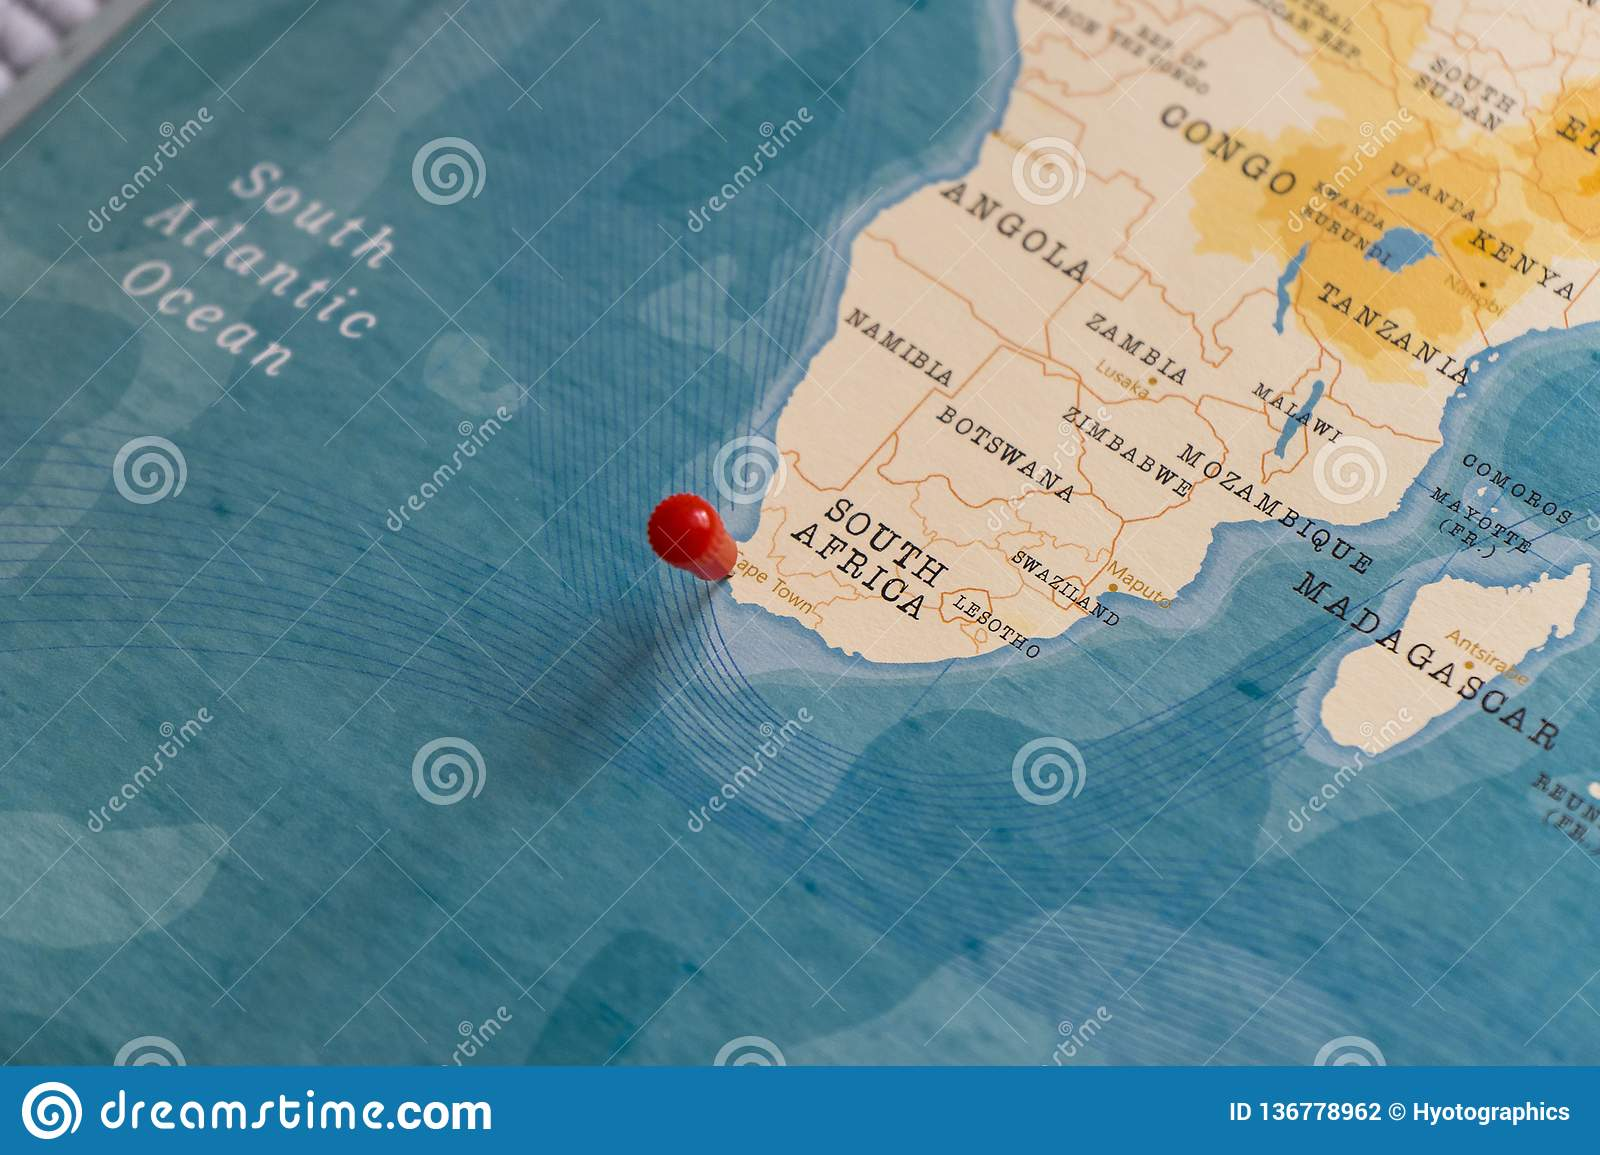 A Pin On Cape Town South Africa In The World Map Stock Photo